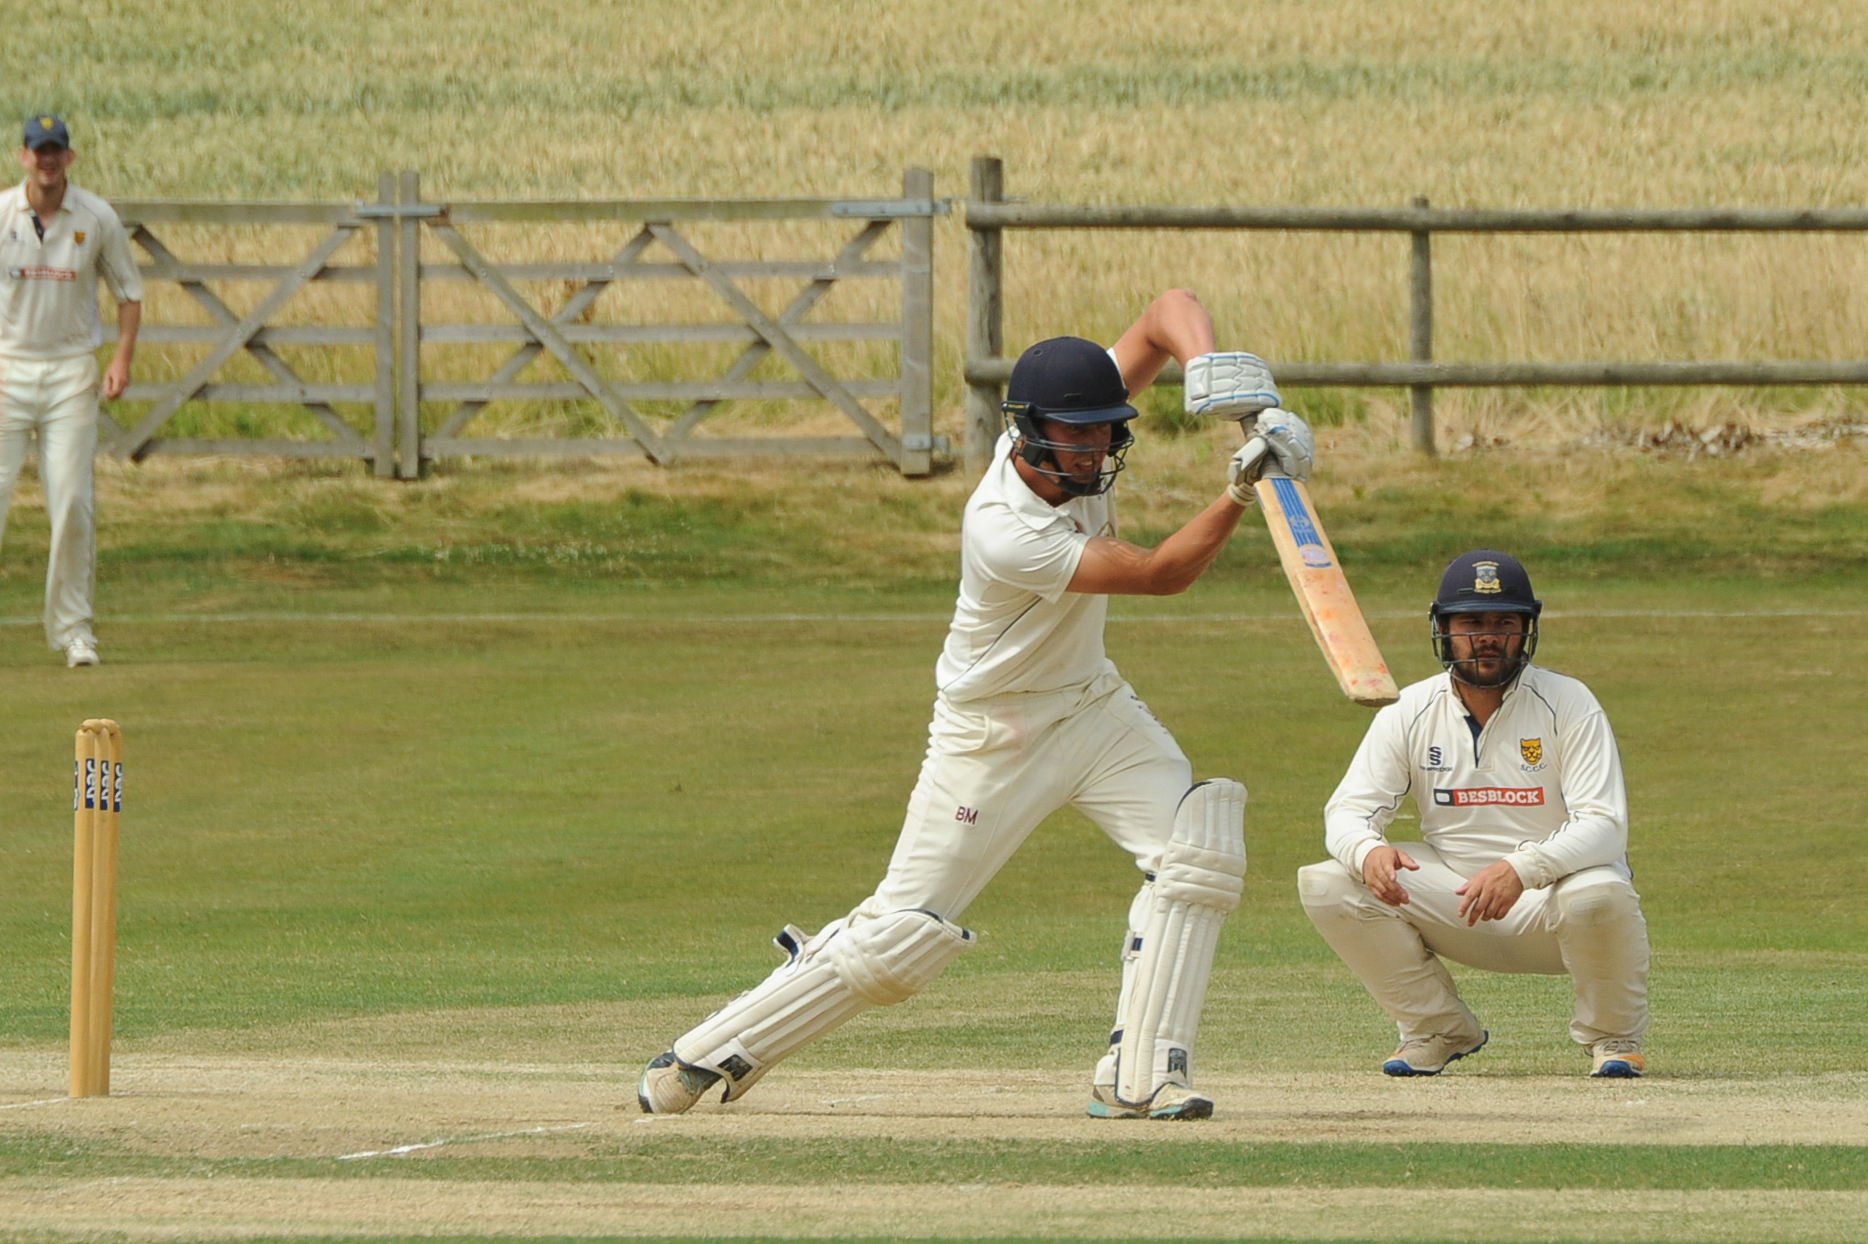 Barney Morgan has established himself in the Herefordshire side and is shown here on his way to a brilliant unbeaten 147 against Shropshire at Eastnor